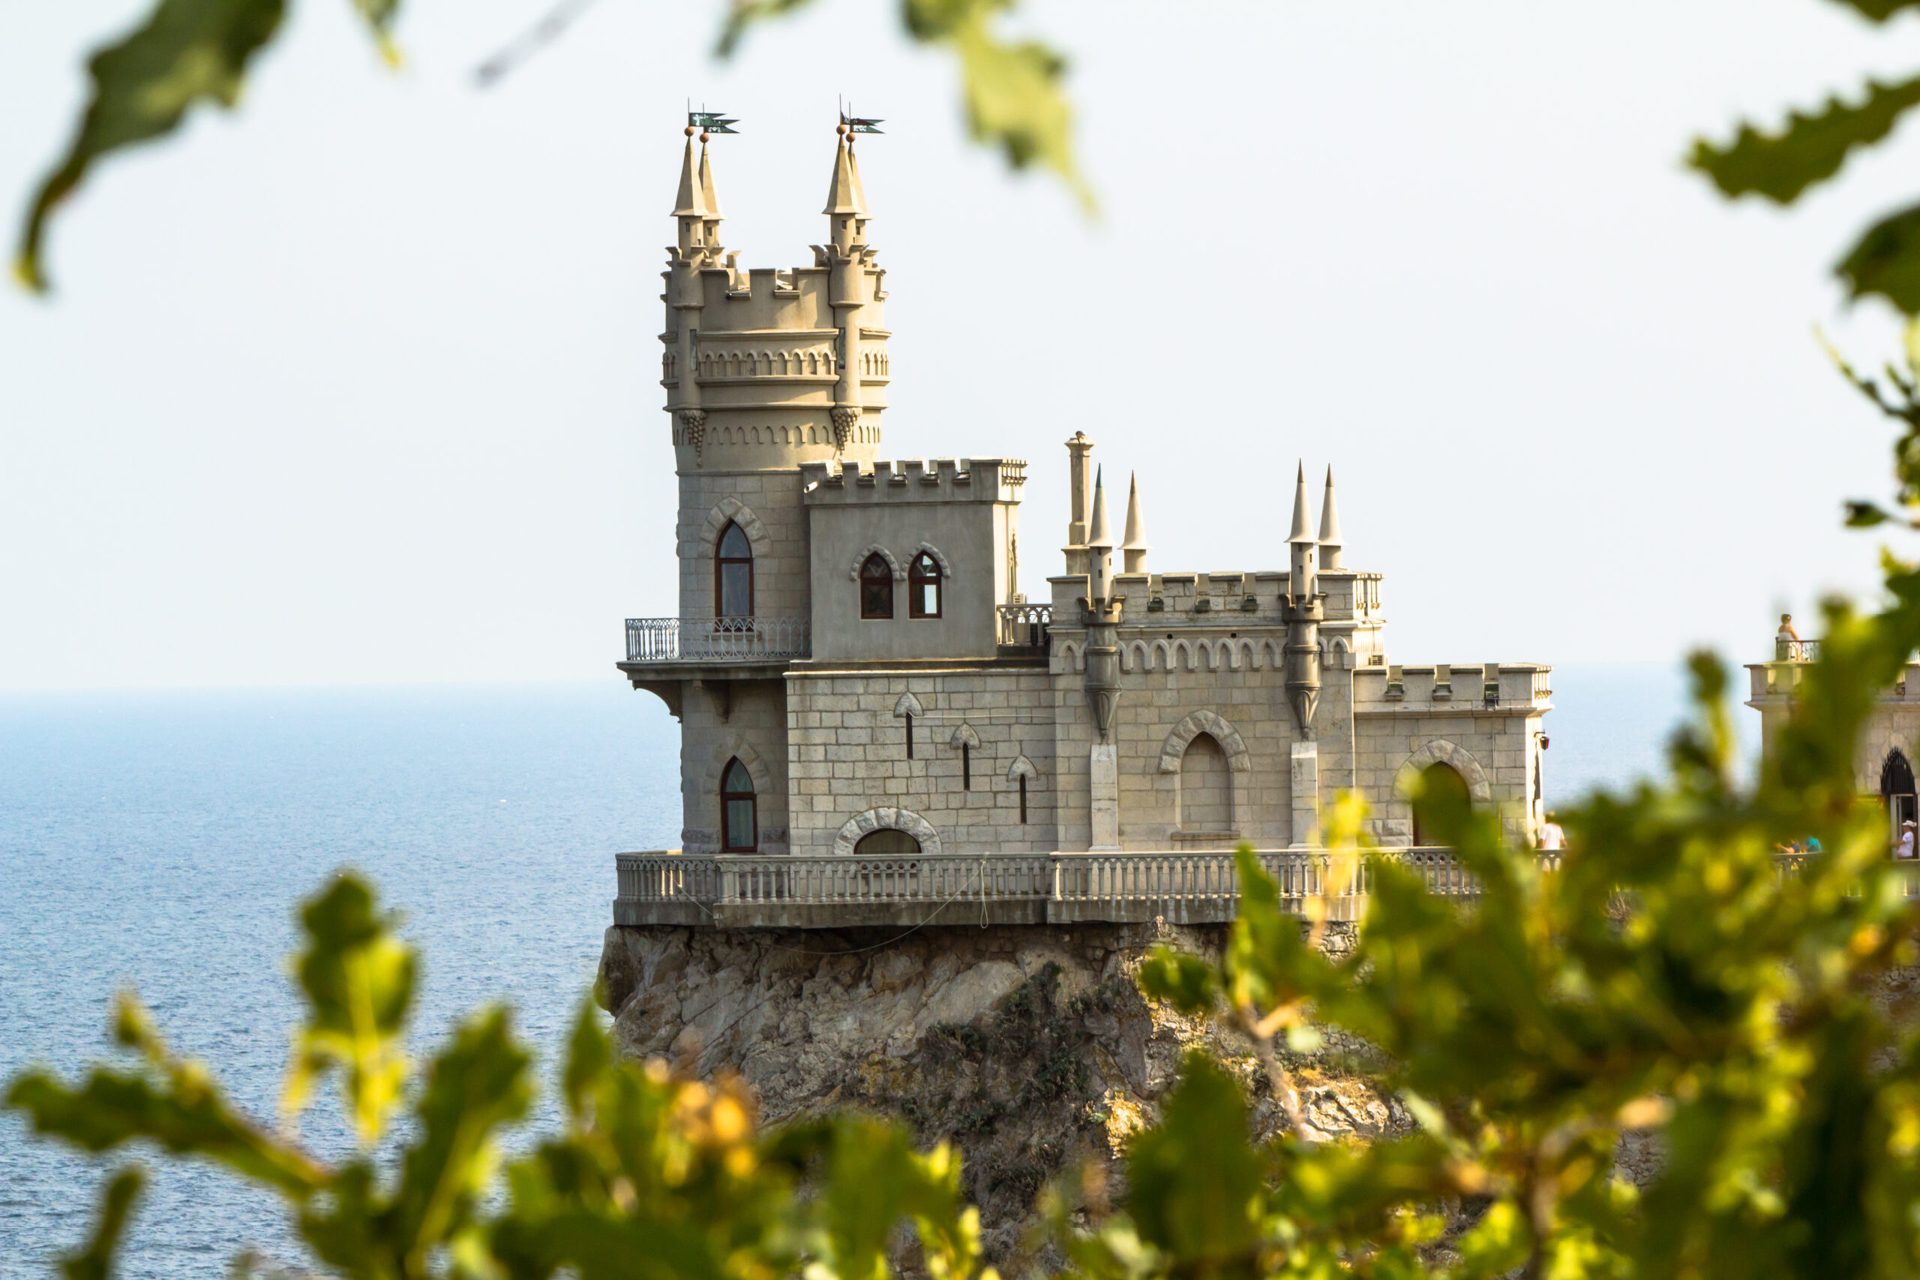 A beautiful castle on the top of a cliff over the sea